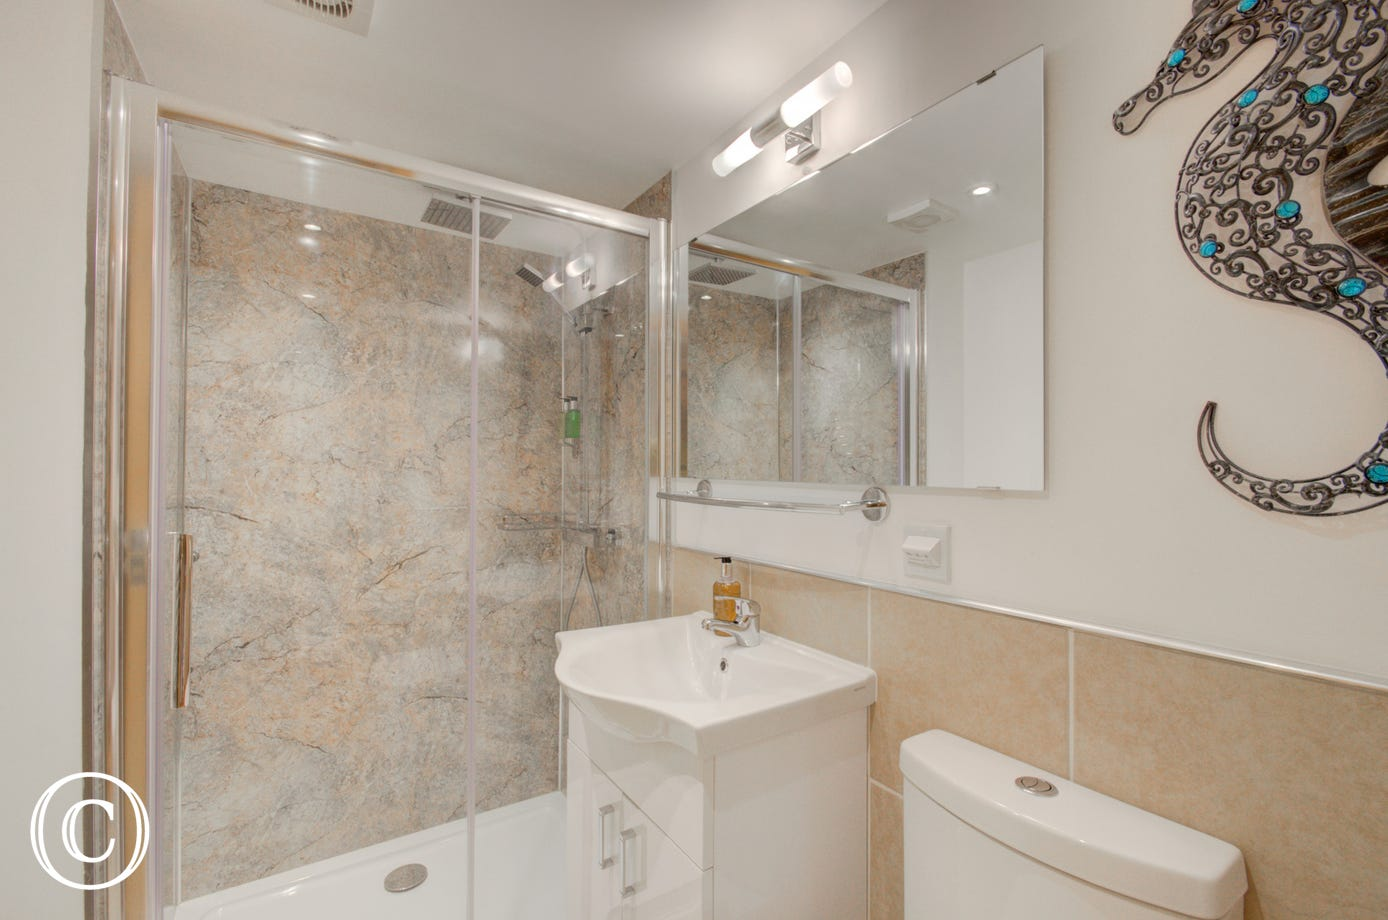 Shower room with double-head shower